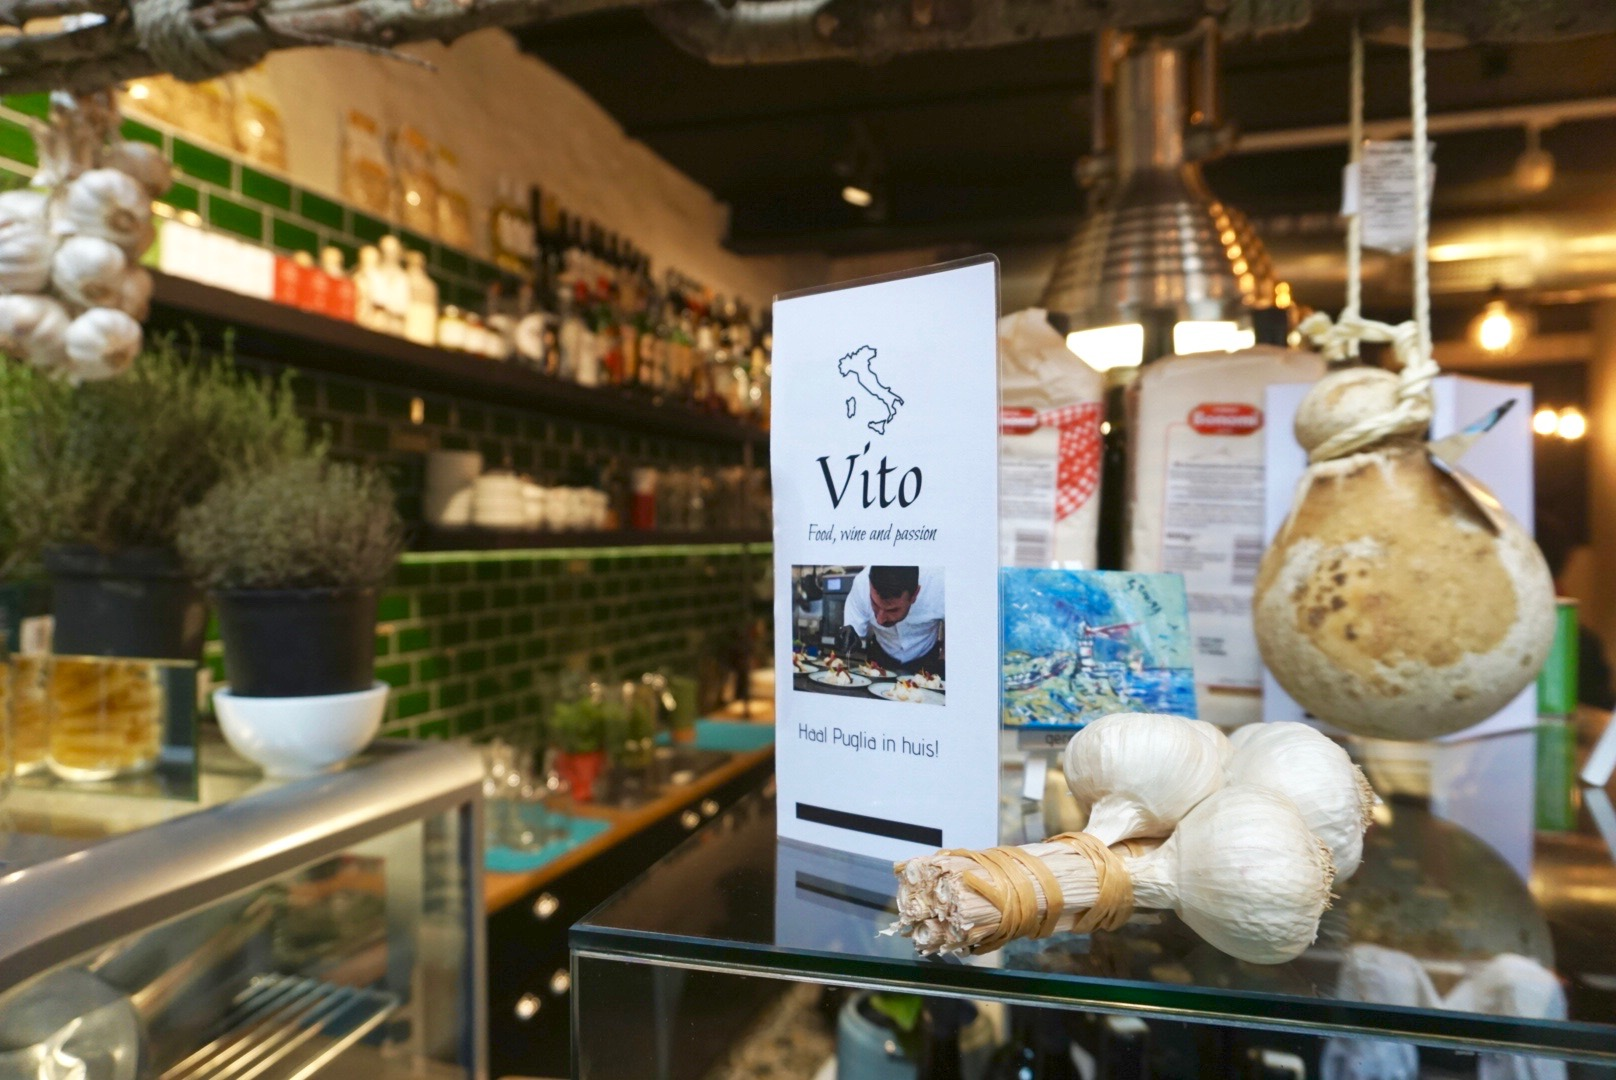 Ostend City Queen Karin luncht bij Resto Vito in Oostende